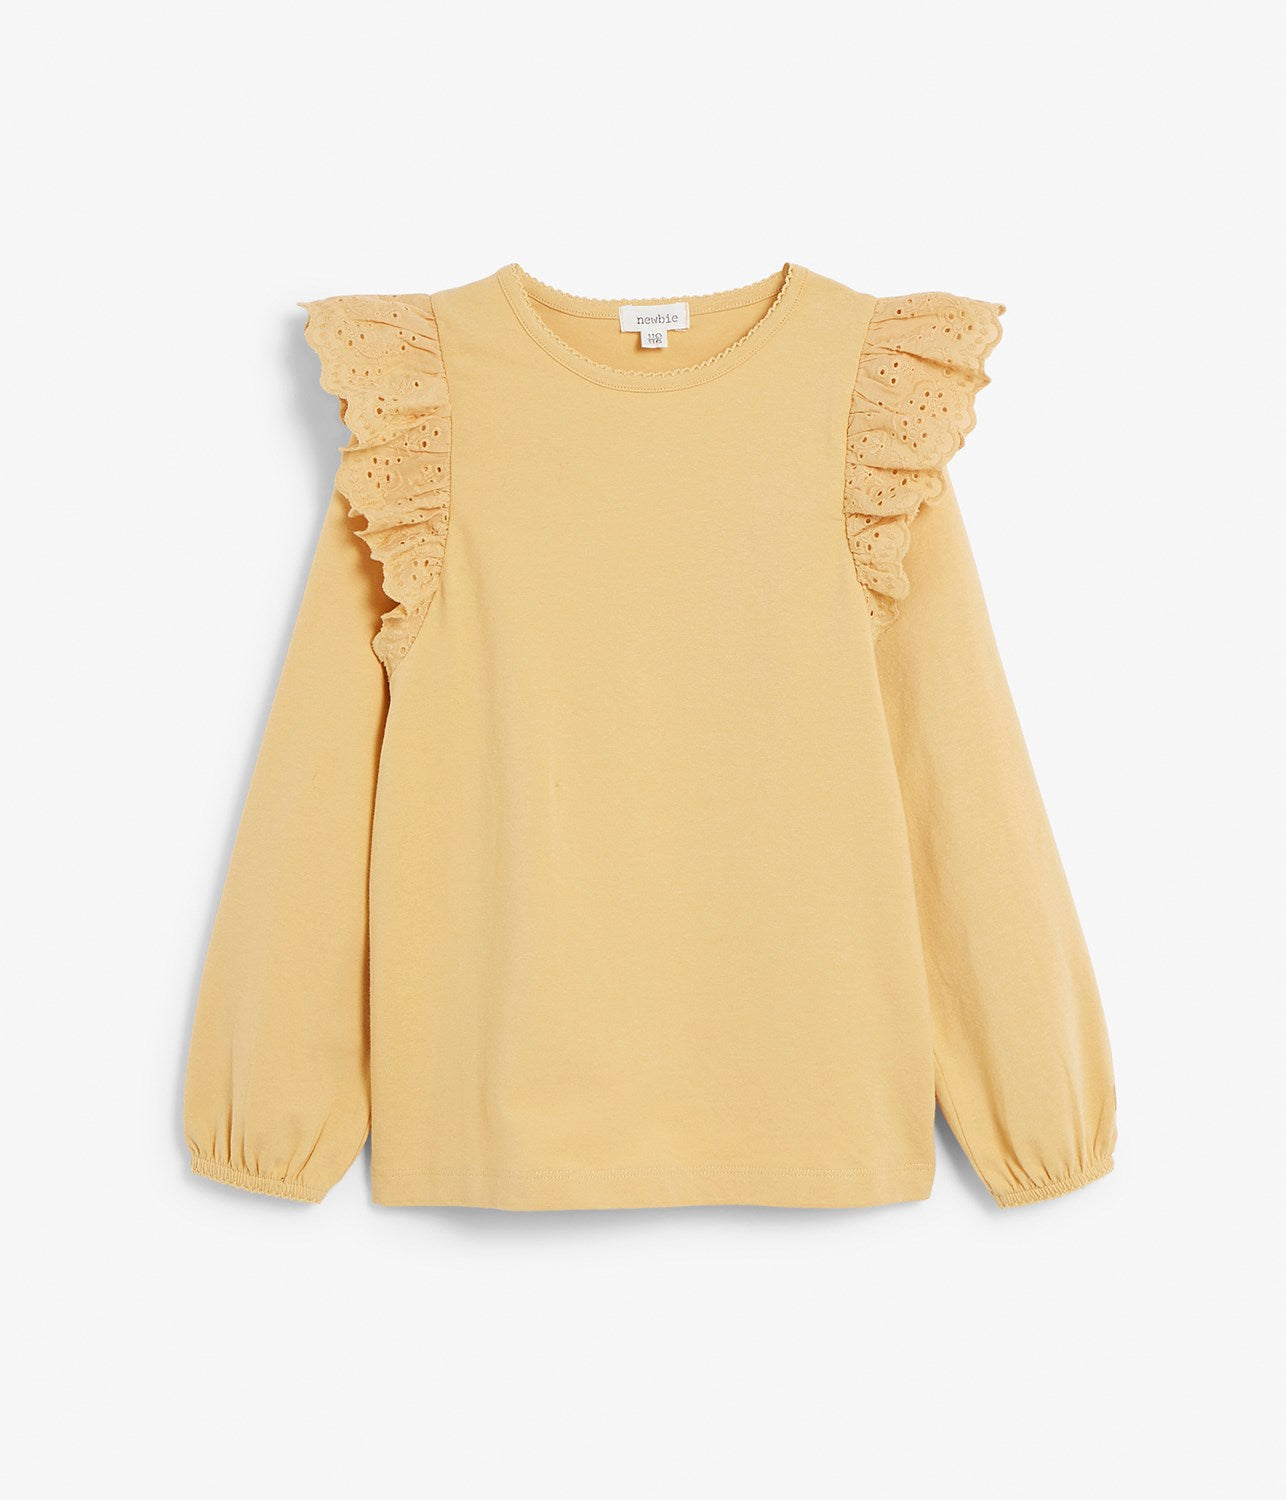 Kids yellow long sleeve top